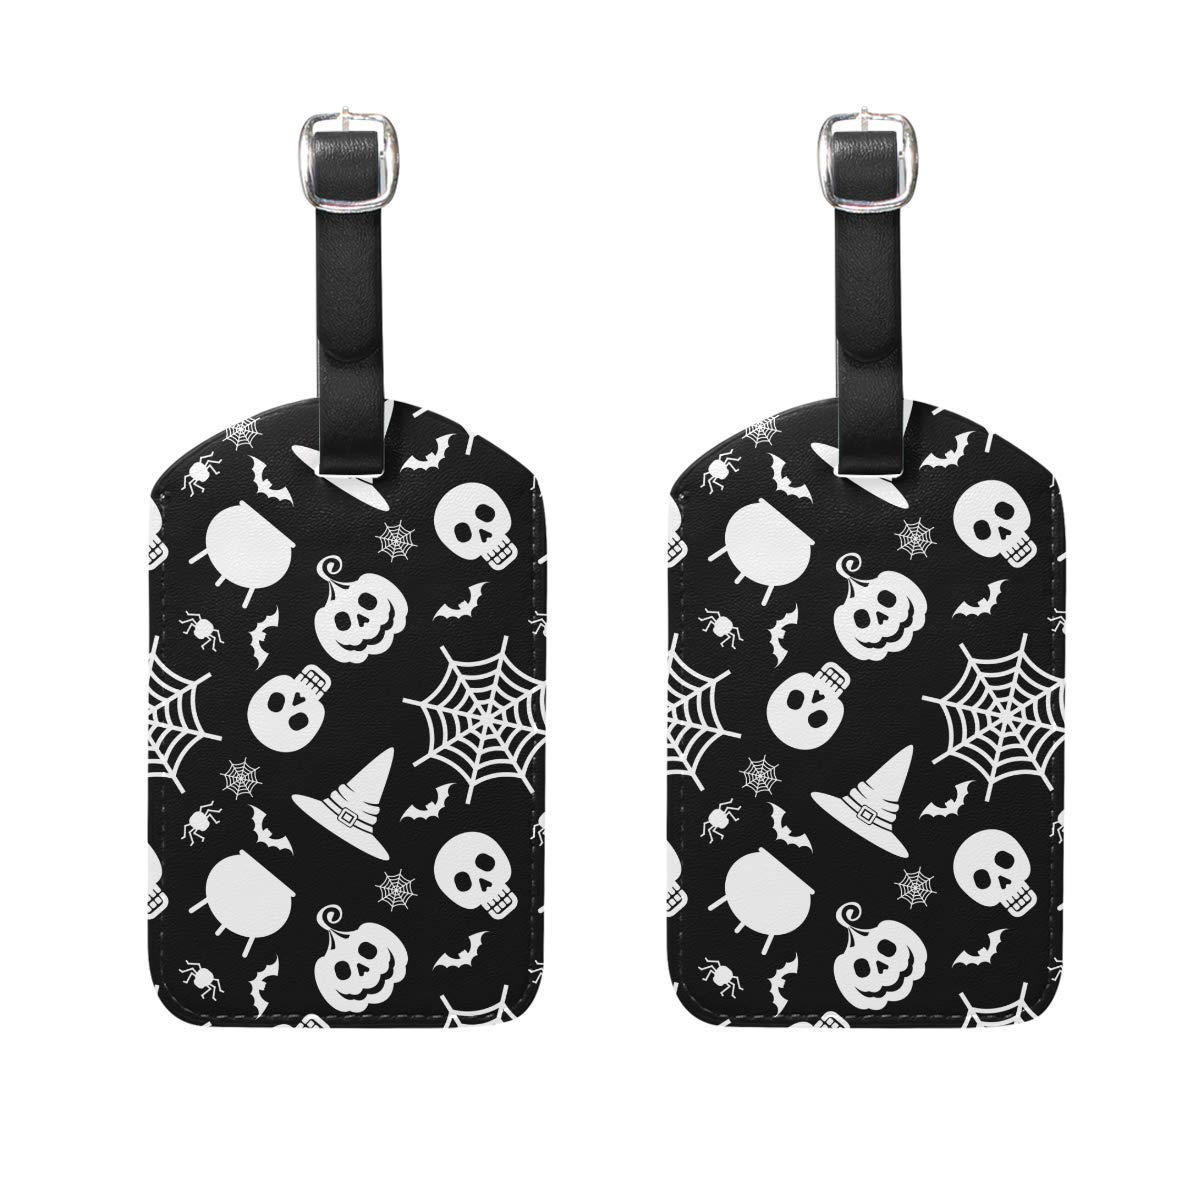 GTdgstdsc Happy Halloween Spider Web Purple Luggage Tag Set of 2 Cruise Ship Women Men Kid Suitcase Label Travel ID Bag Tag with Buckle Leather